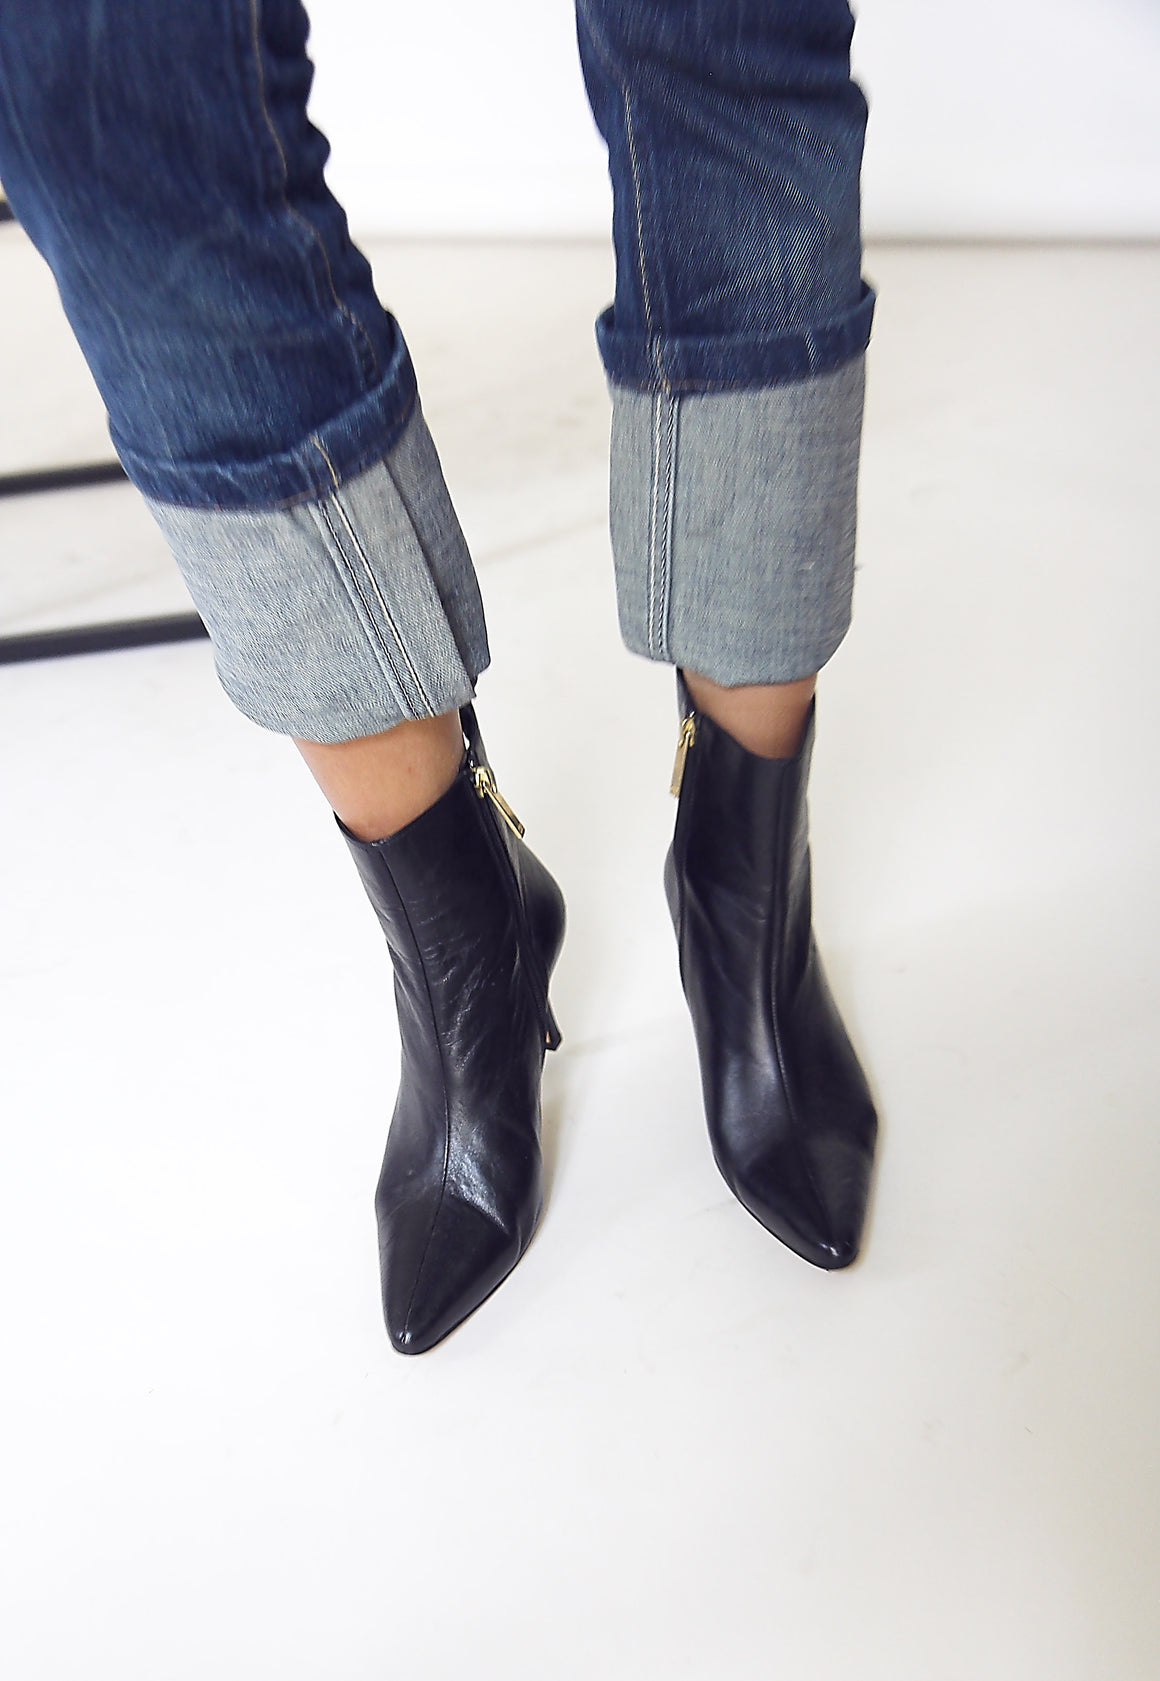 90s Black Leather Carolina Herrera Boots